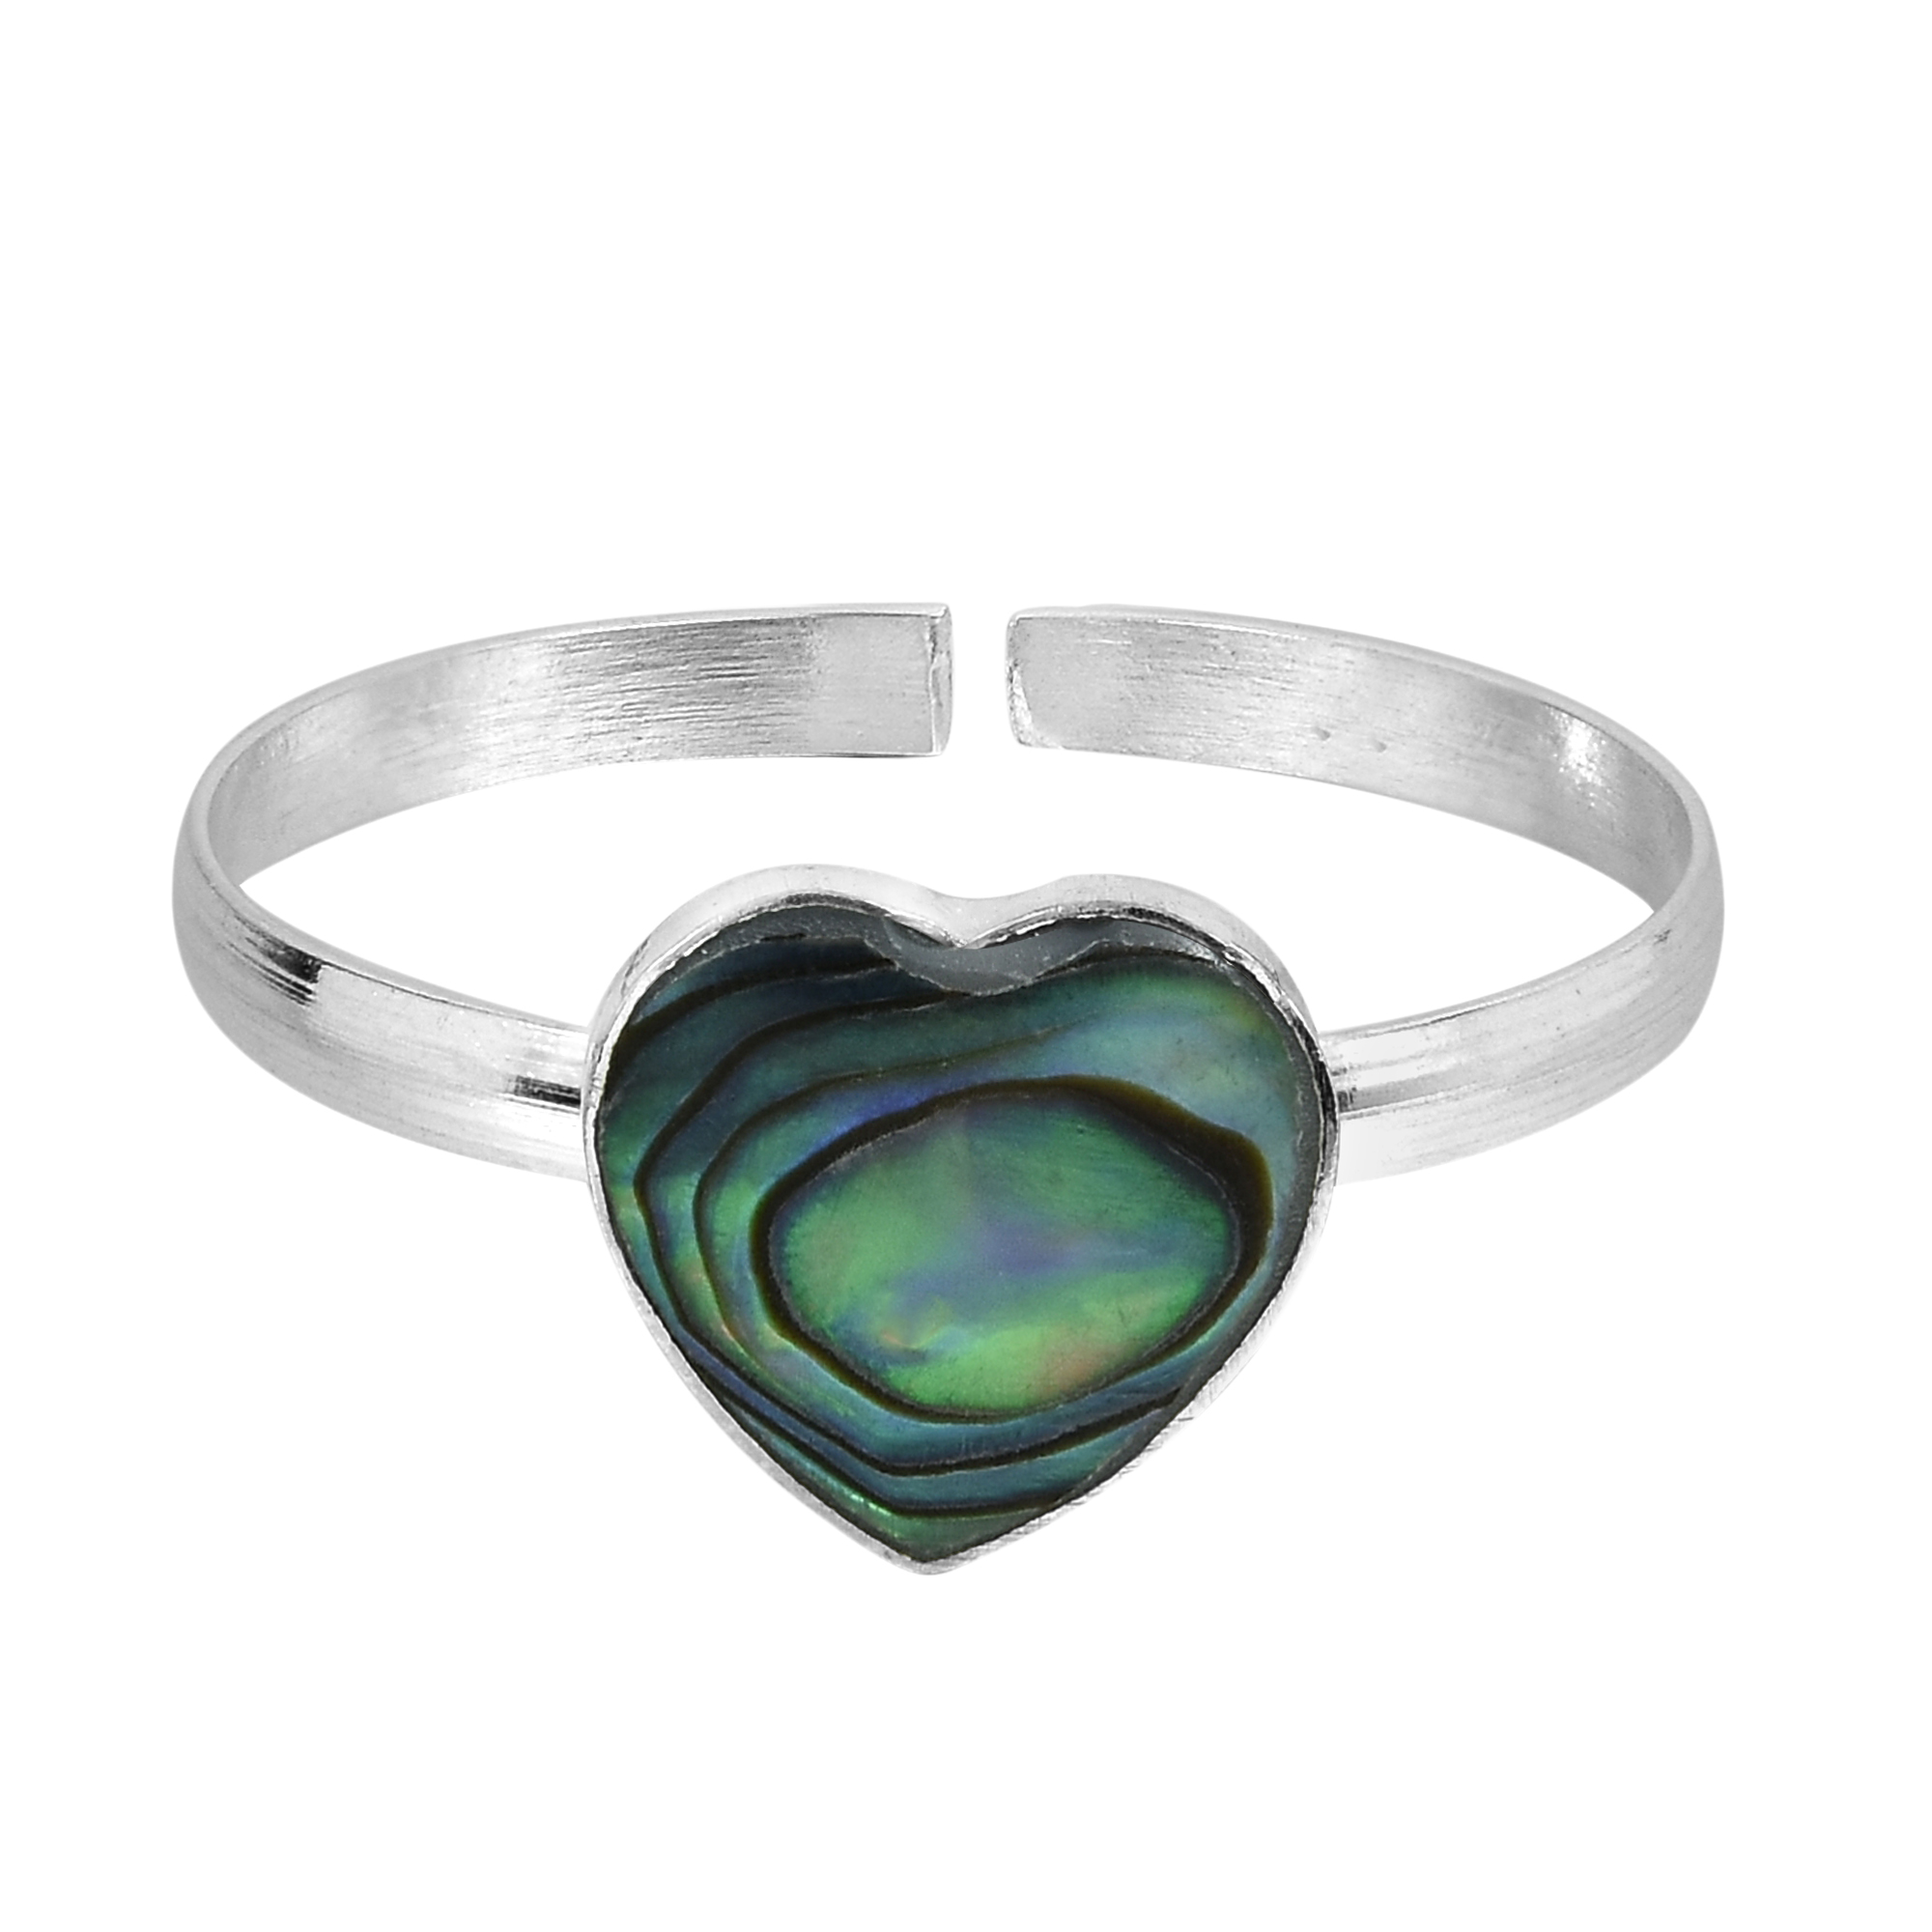 rings orders over jewelry shipping silver shell watches abalone ring heart wedding handmade overstock product sterling free on thailand sweet